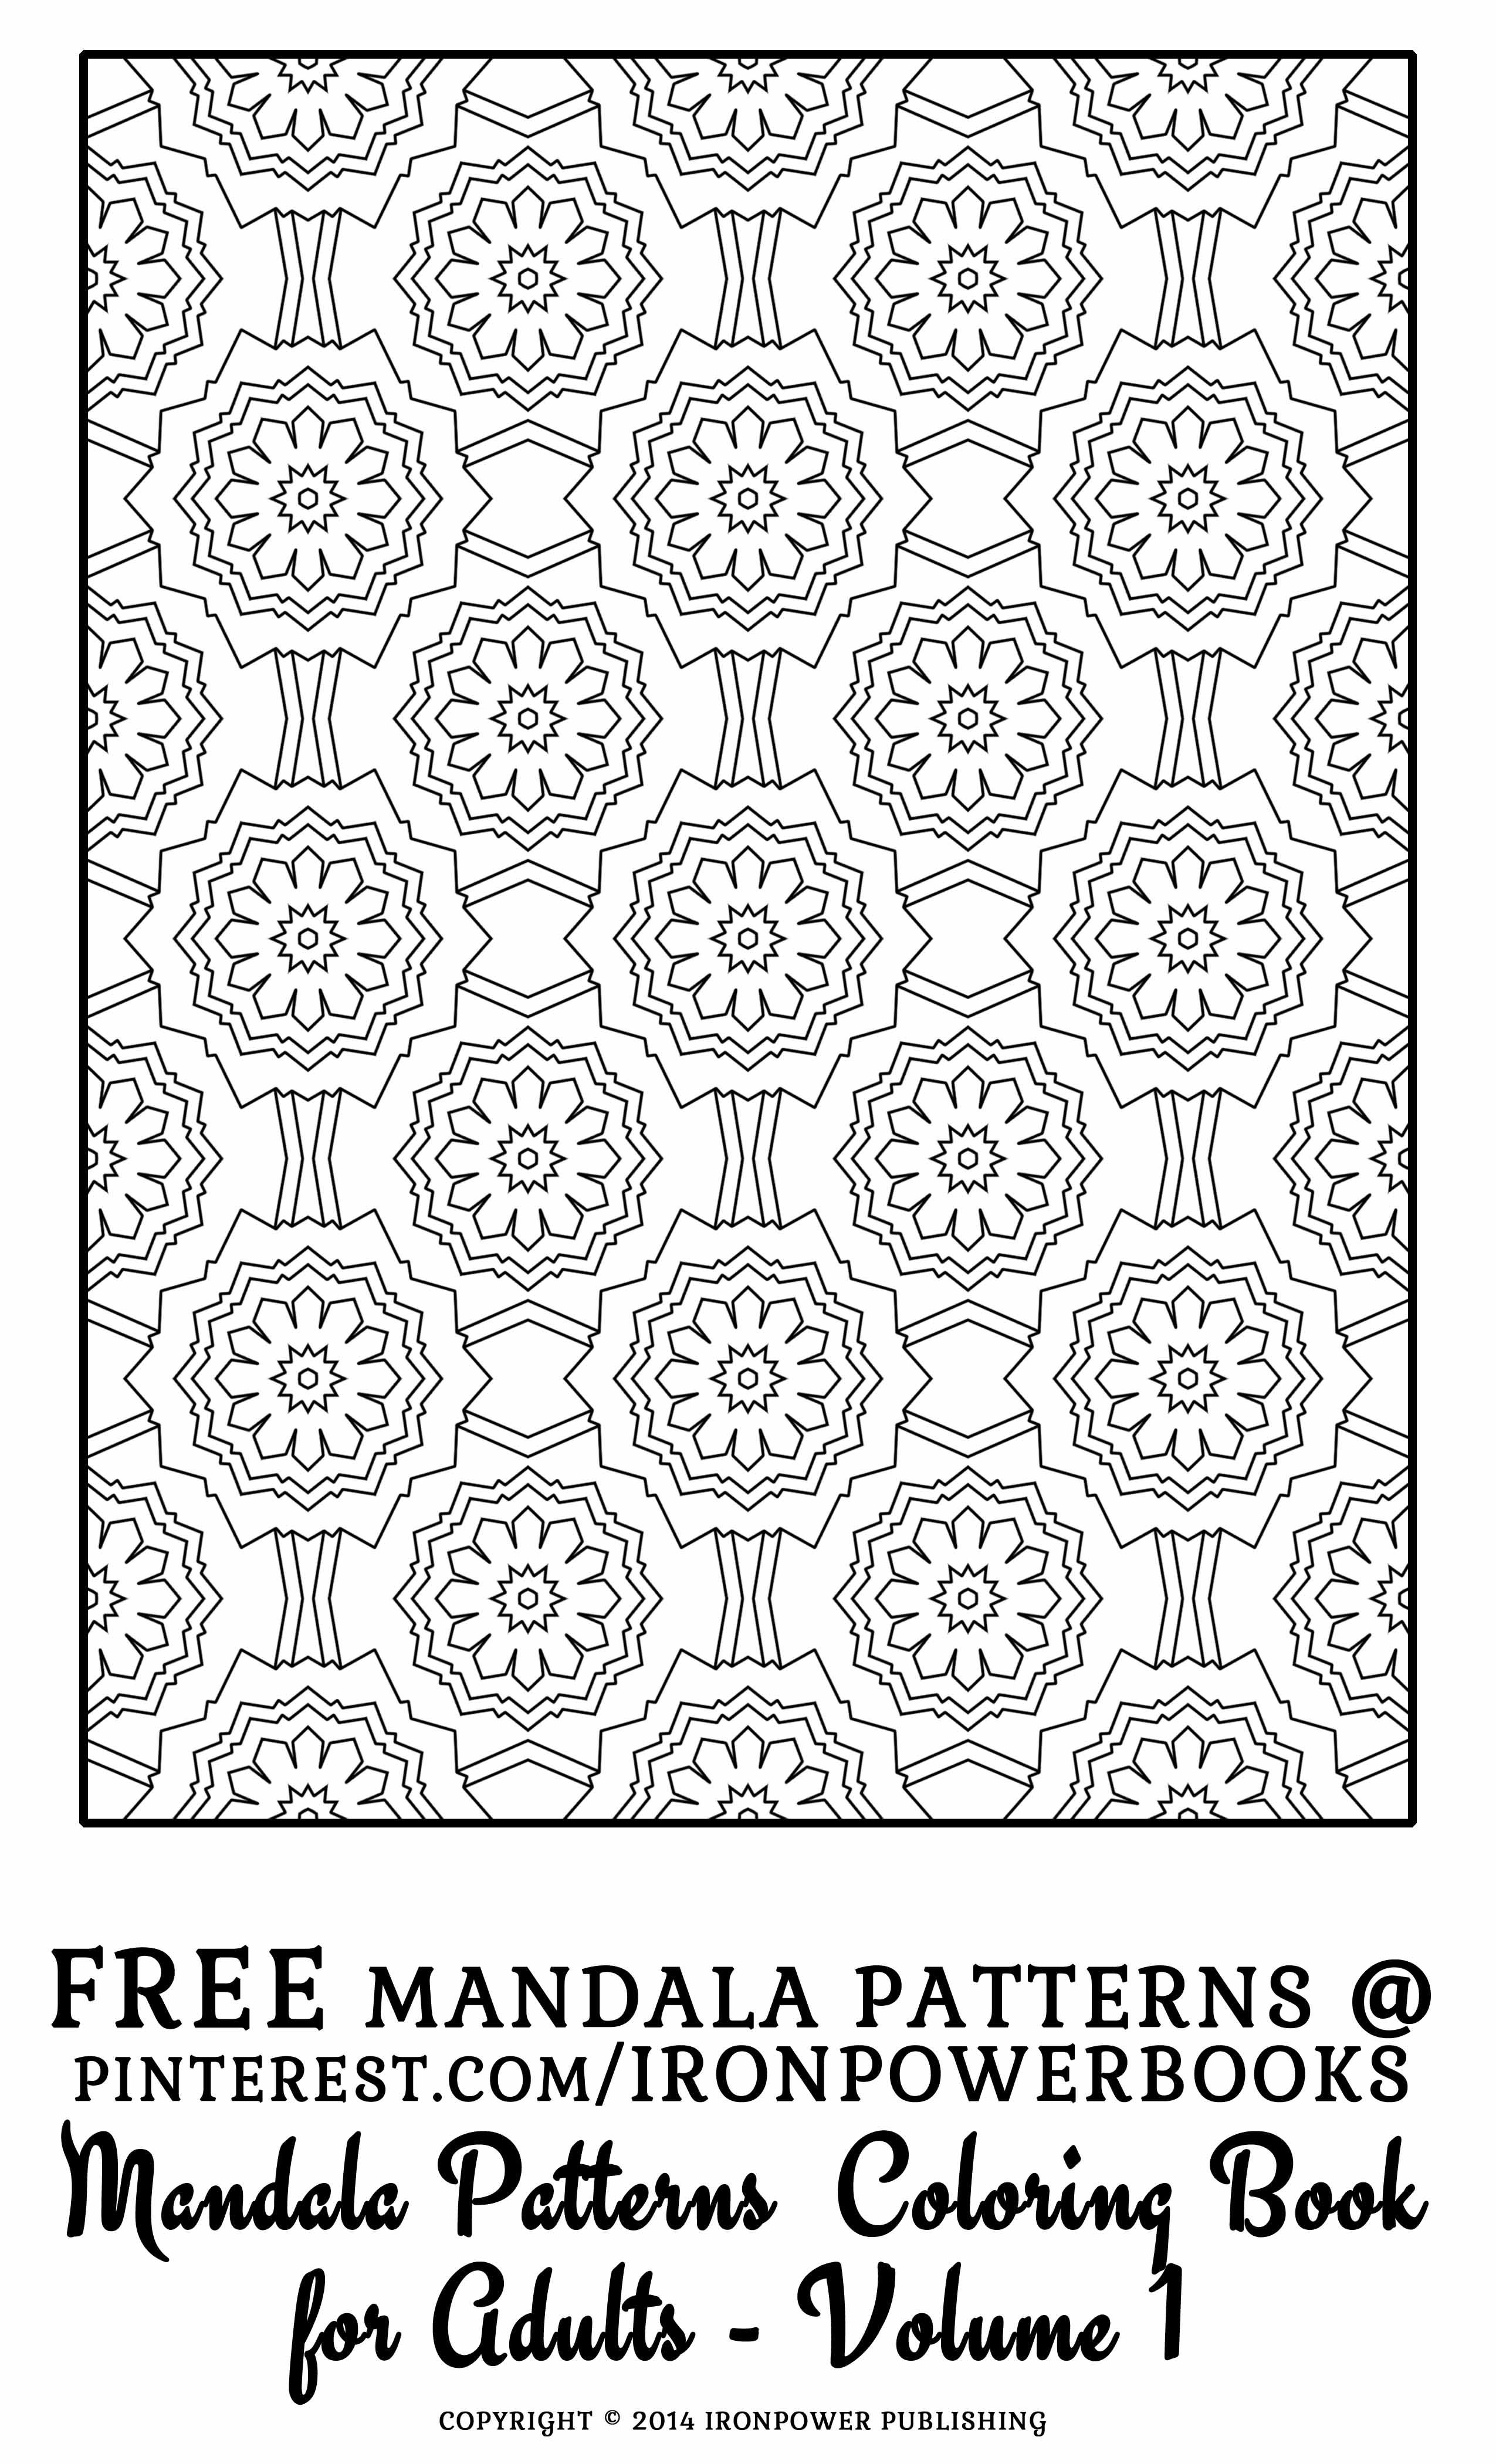 Free Mandala Pattern Coloring Pages For Adults Intricate Mandala Designs To Color For Adults T Pattern Coloring Pages Coloring Pages Mandala Coloring Pages